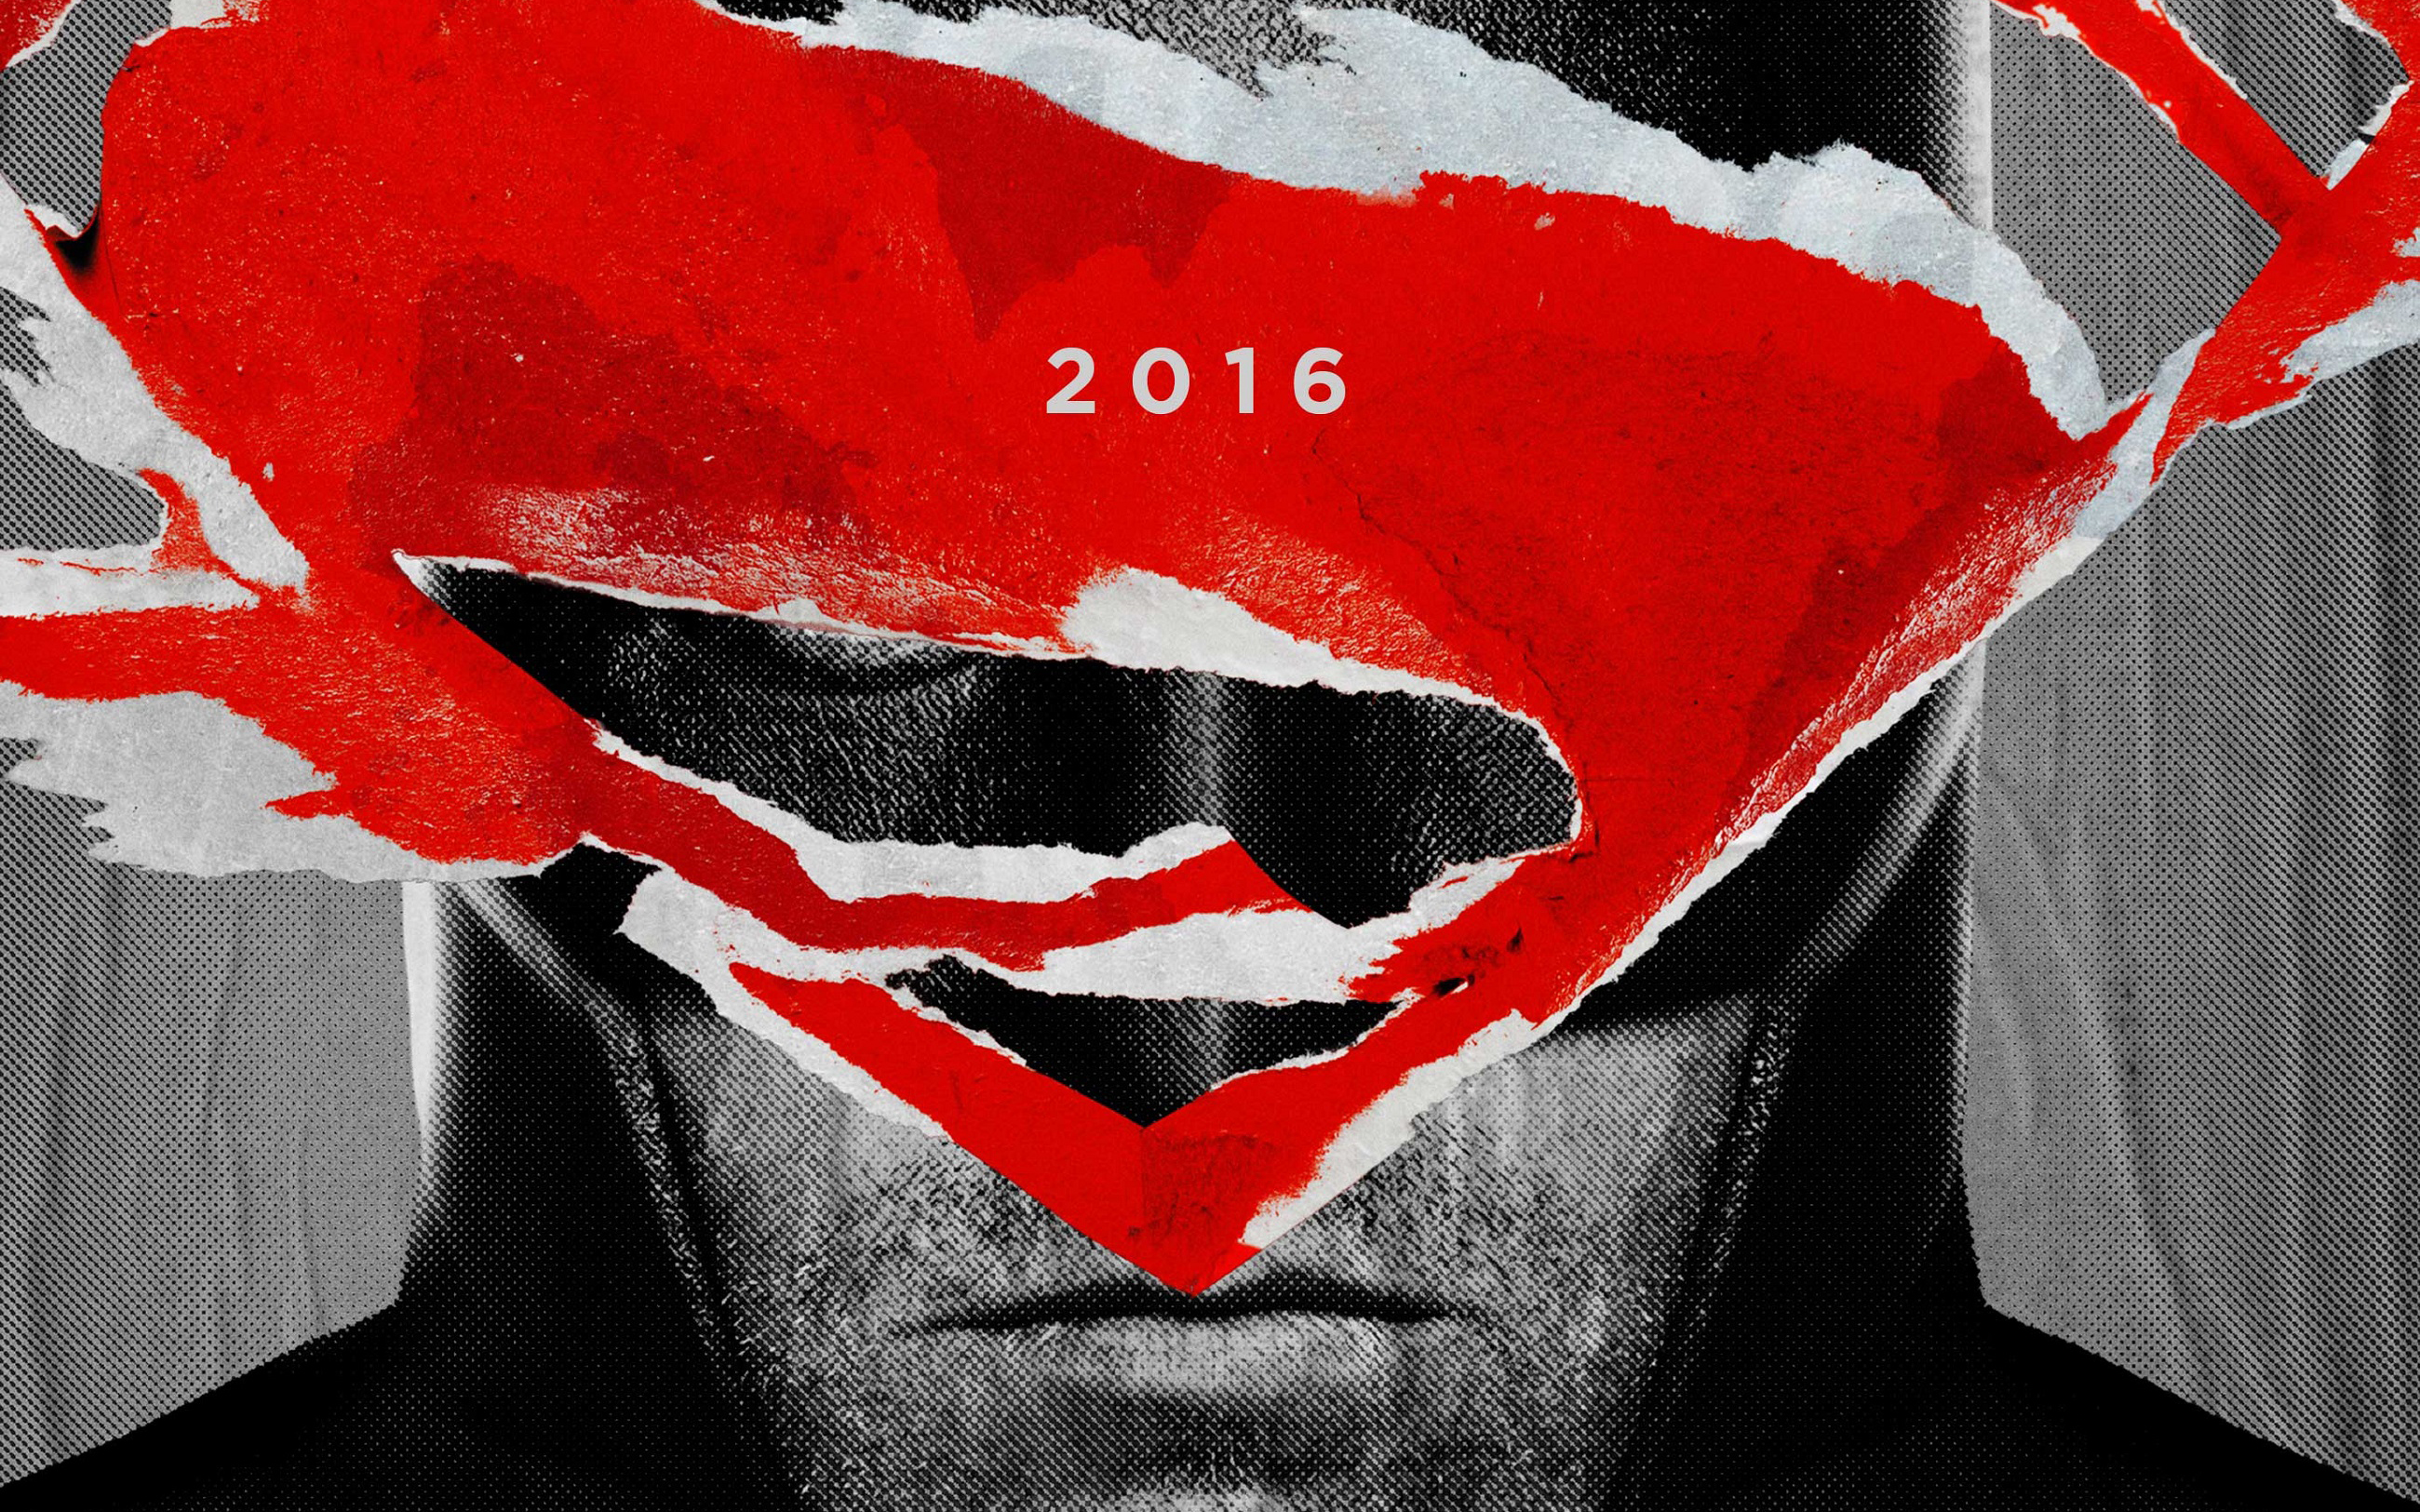 Batman Vs Superman 3, HD Movies, 4k Wallpapers, Images